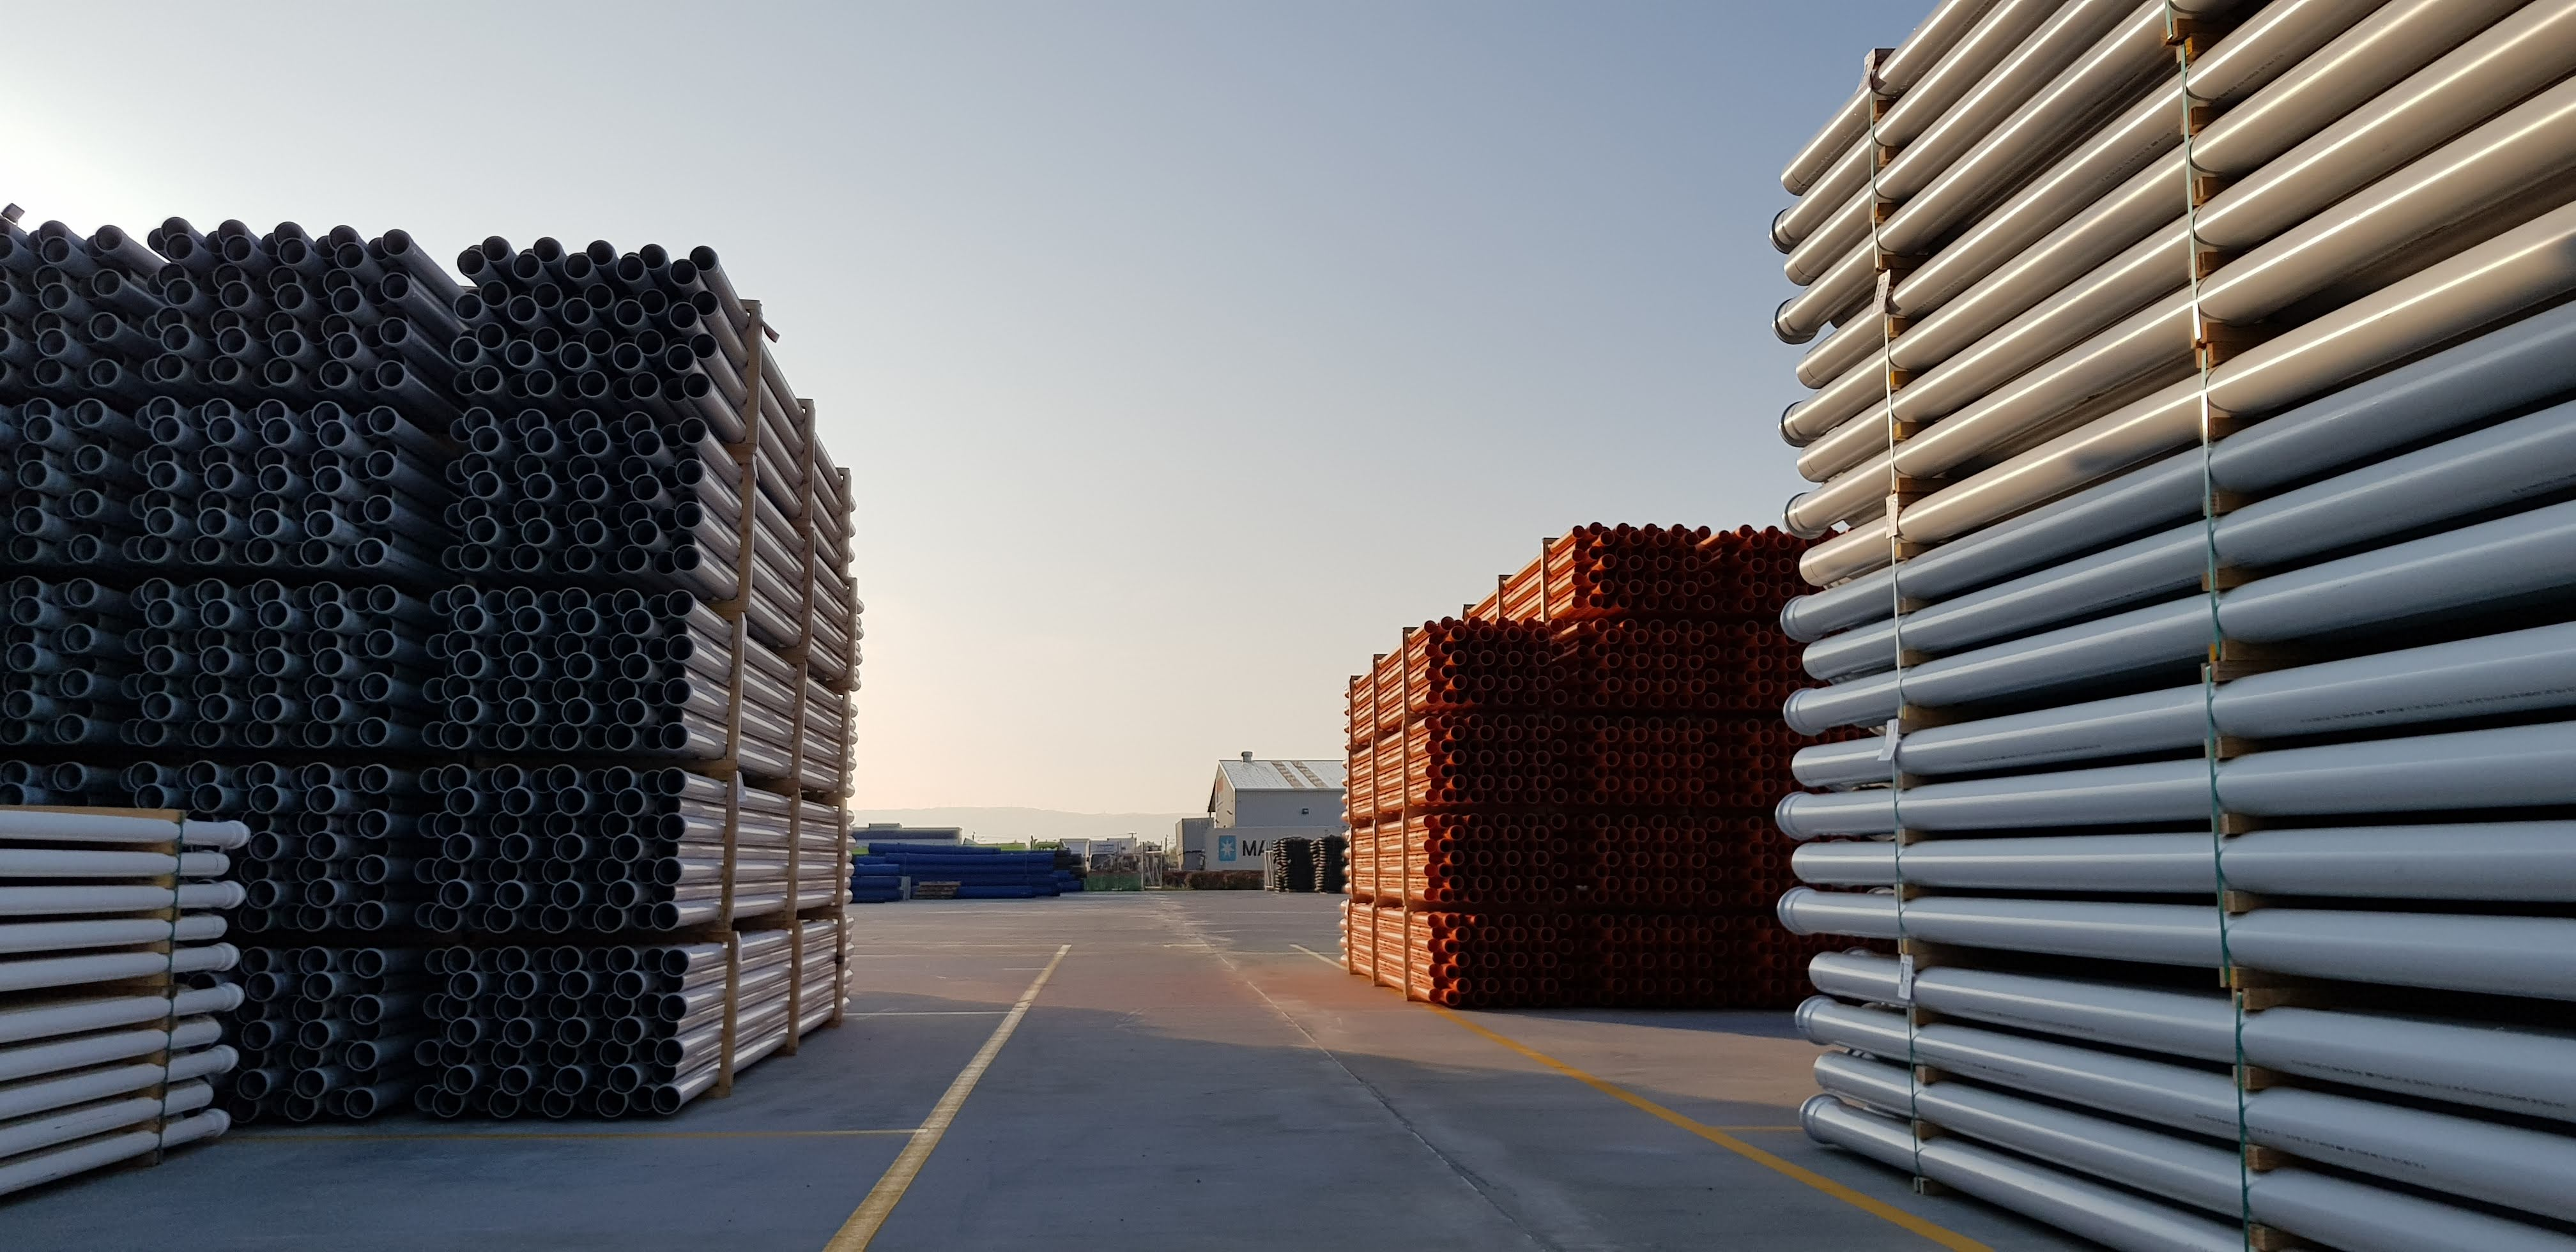 Permaforce fibre reinforced concrete slab easily handles large heavy stacks of pipes in this industrial loading bay